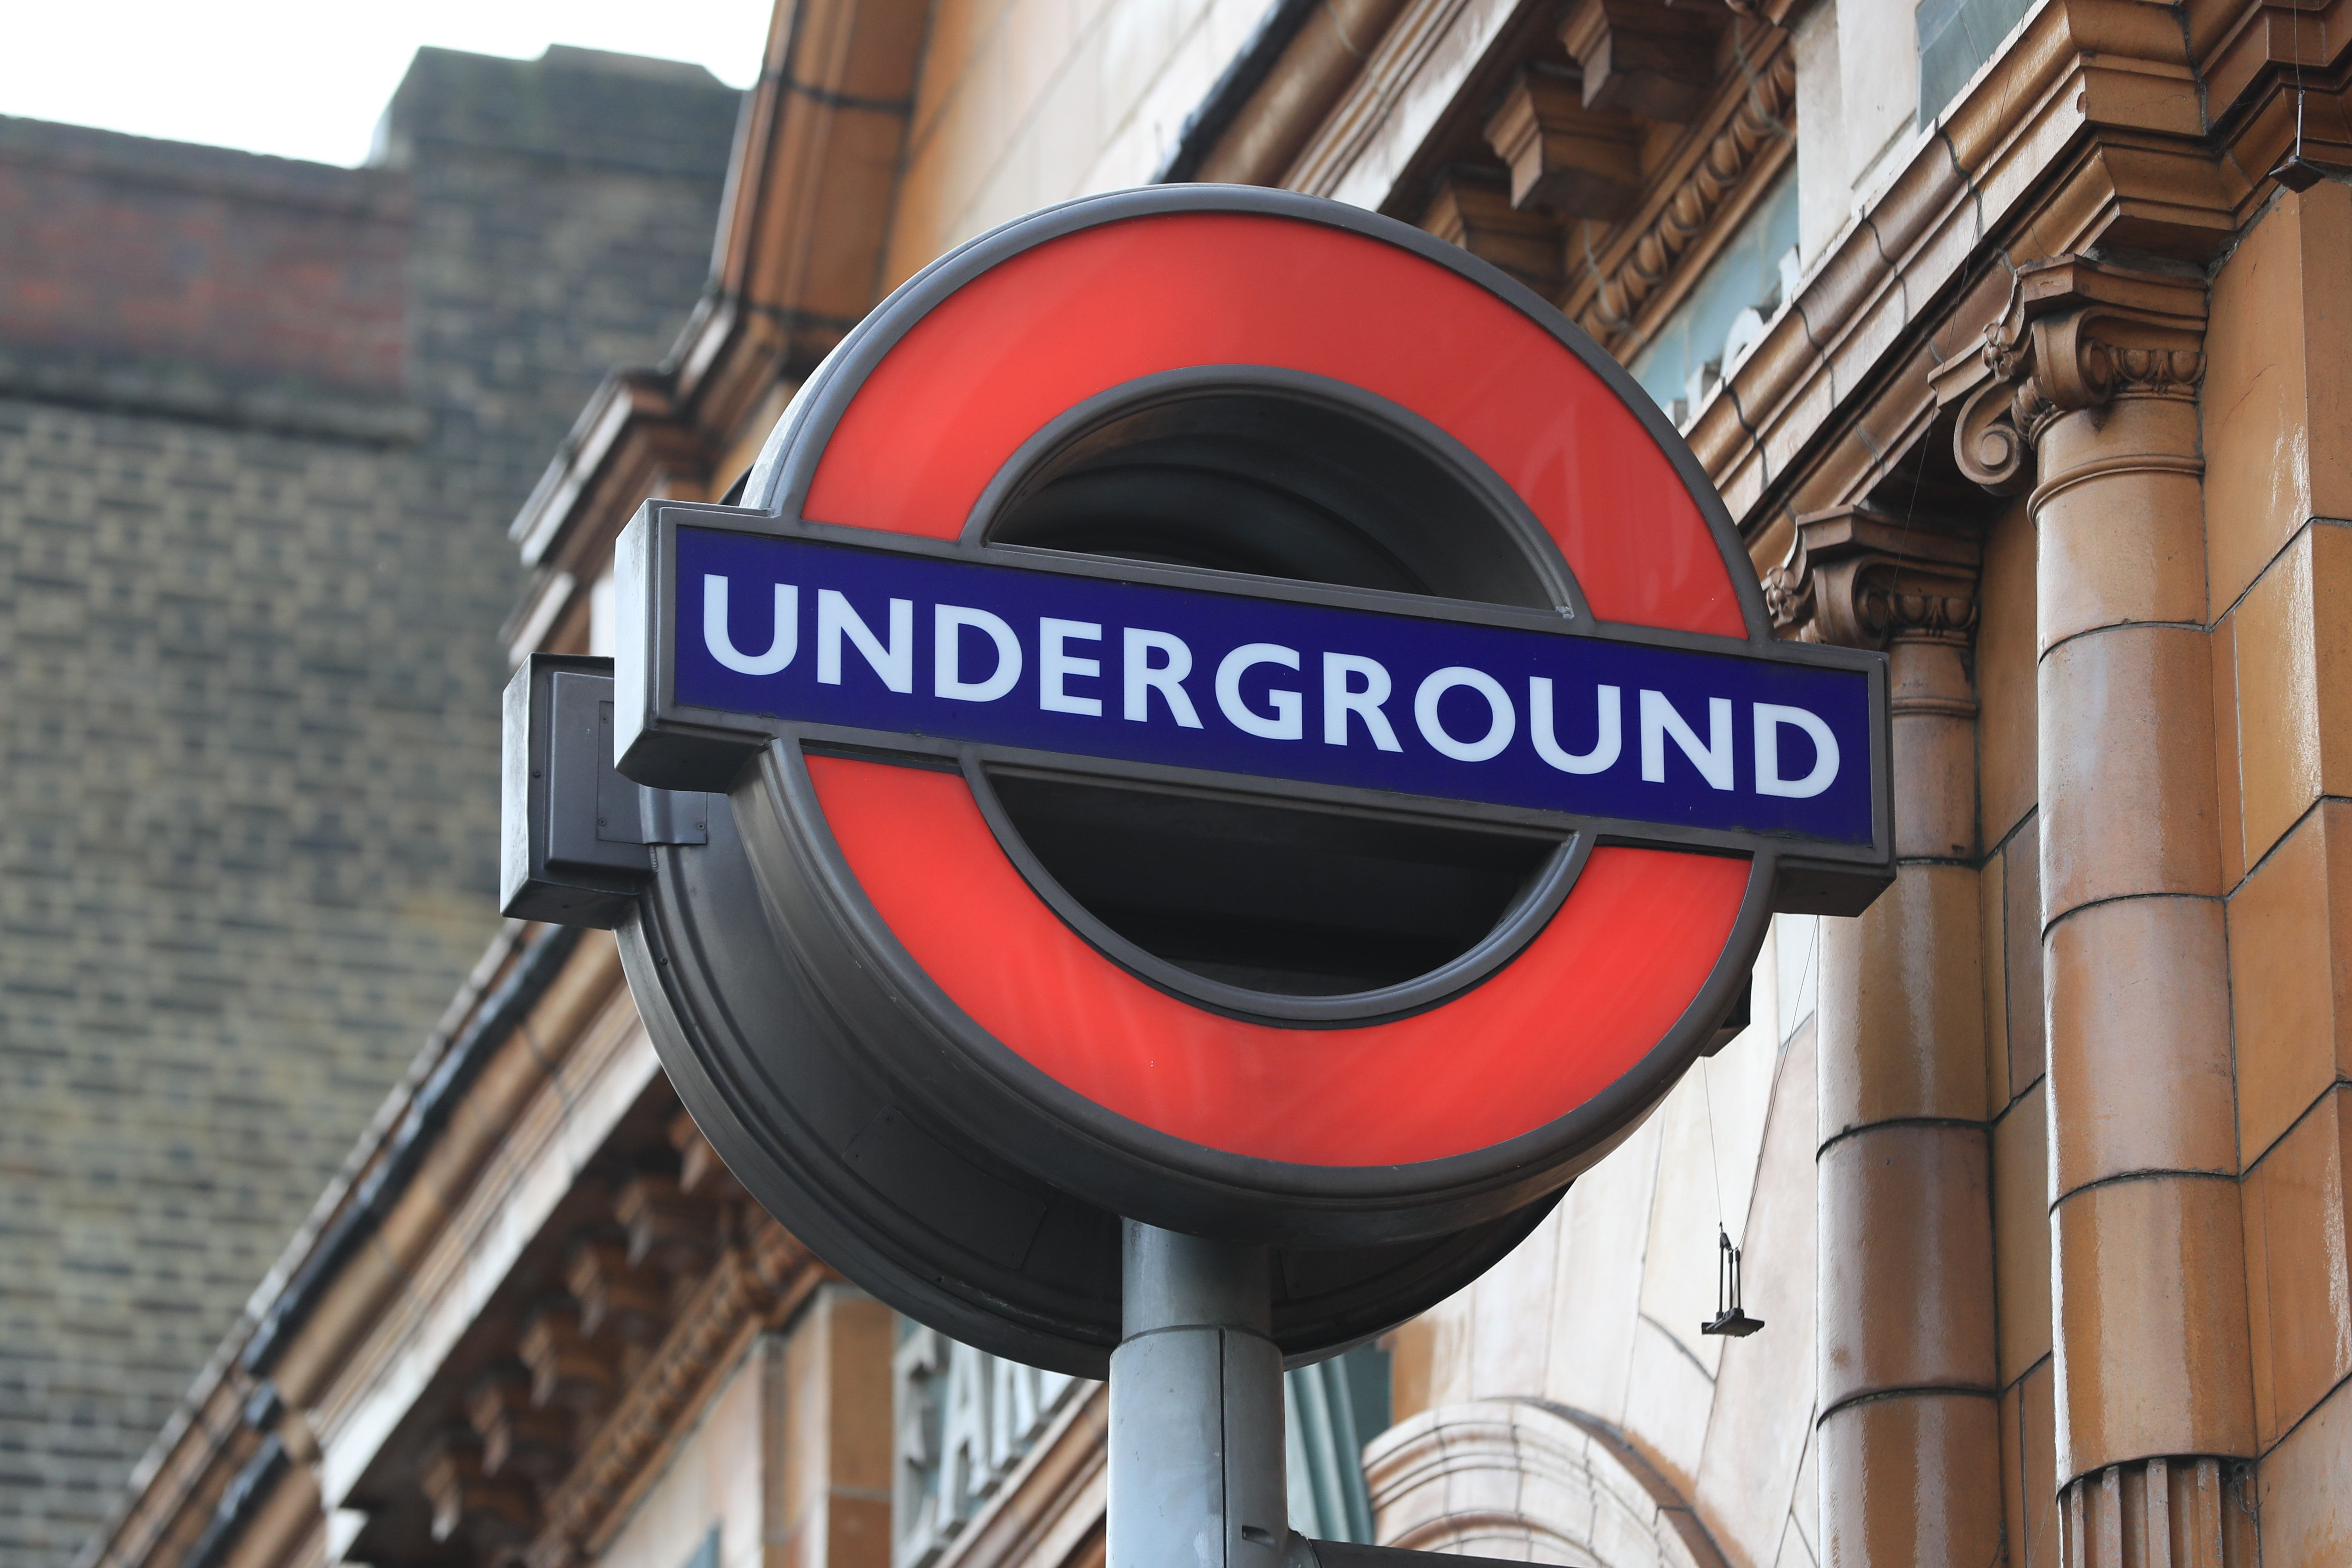 Siemens Accused Of Duping Transport Bosses Over £1.5bn Tube